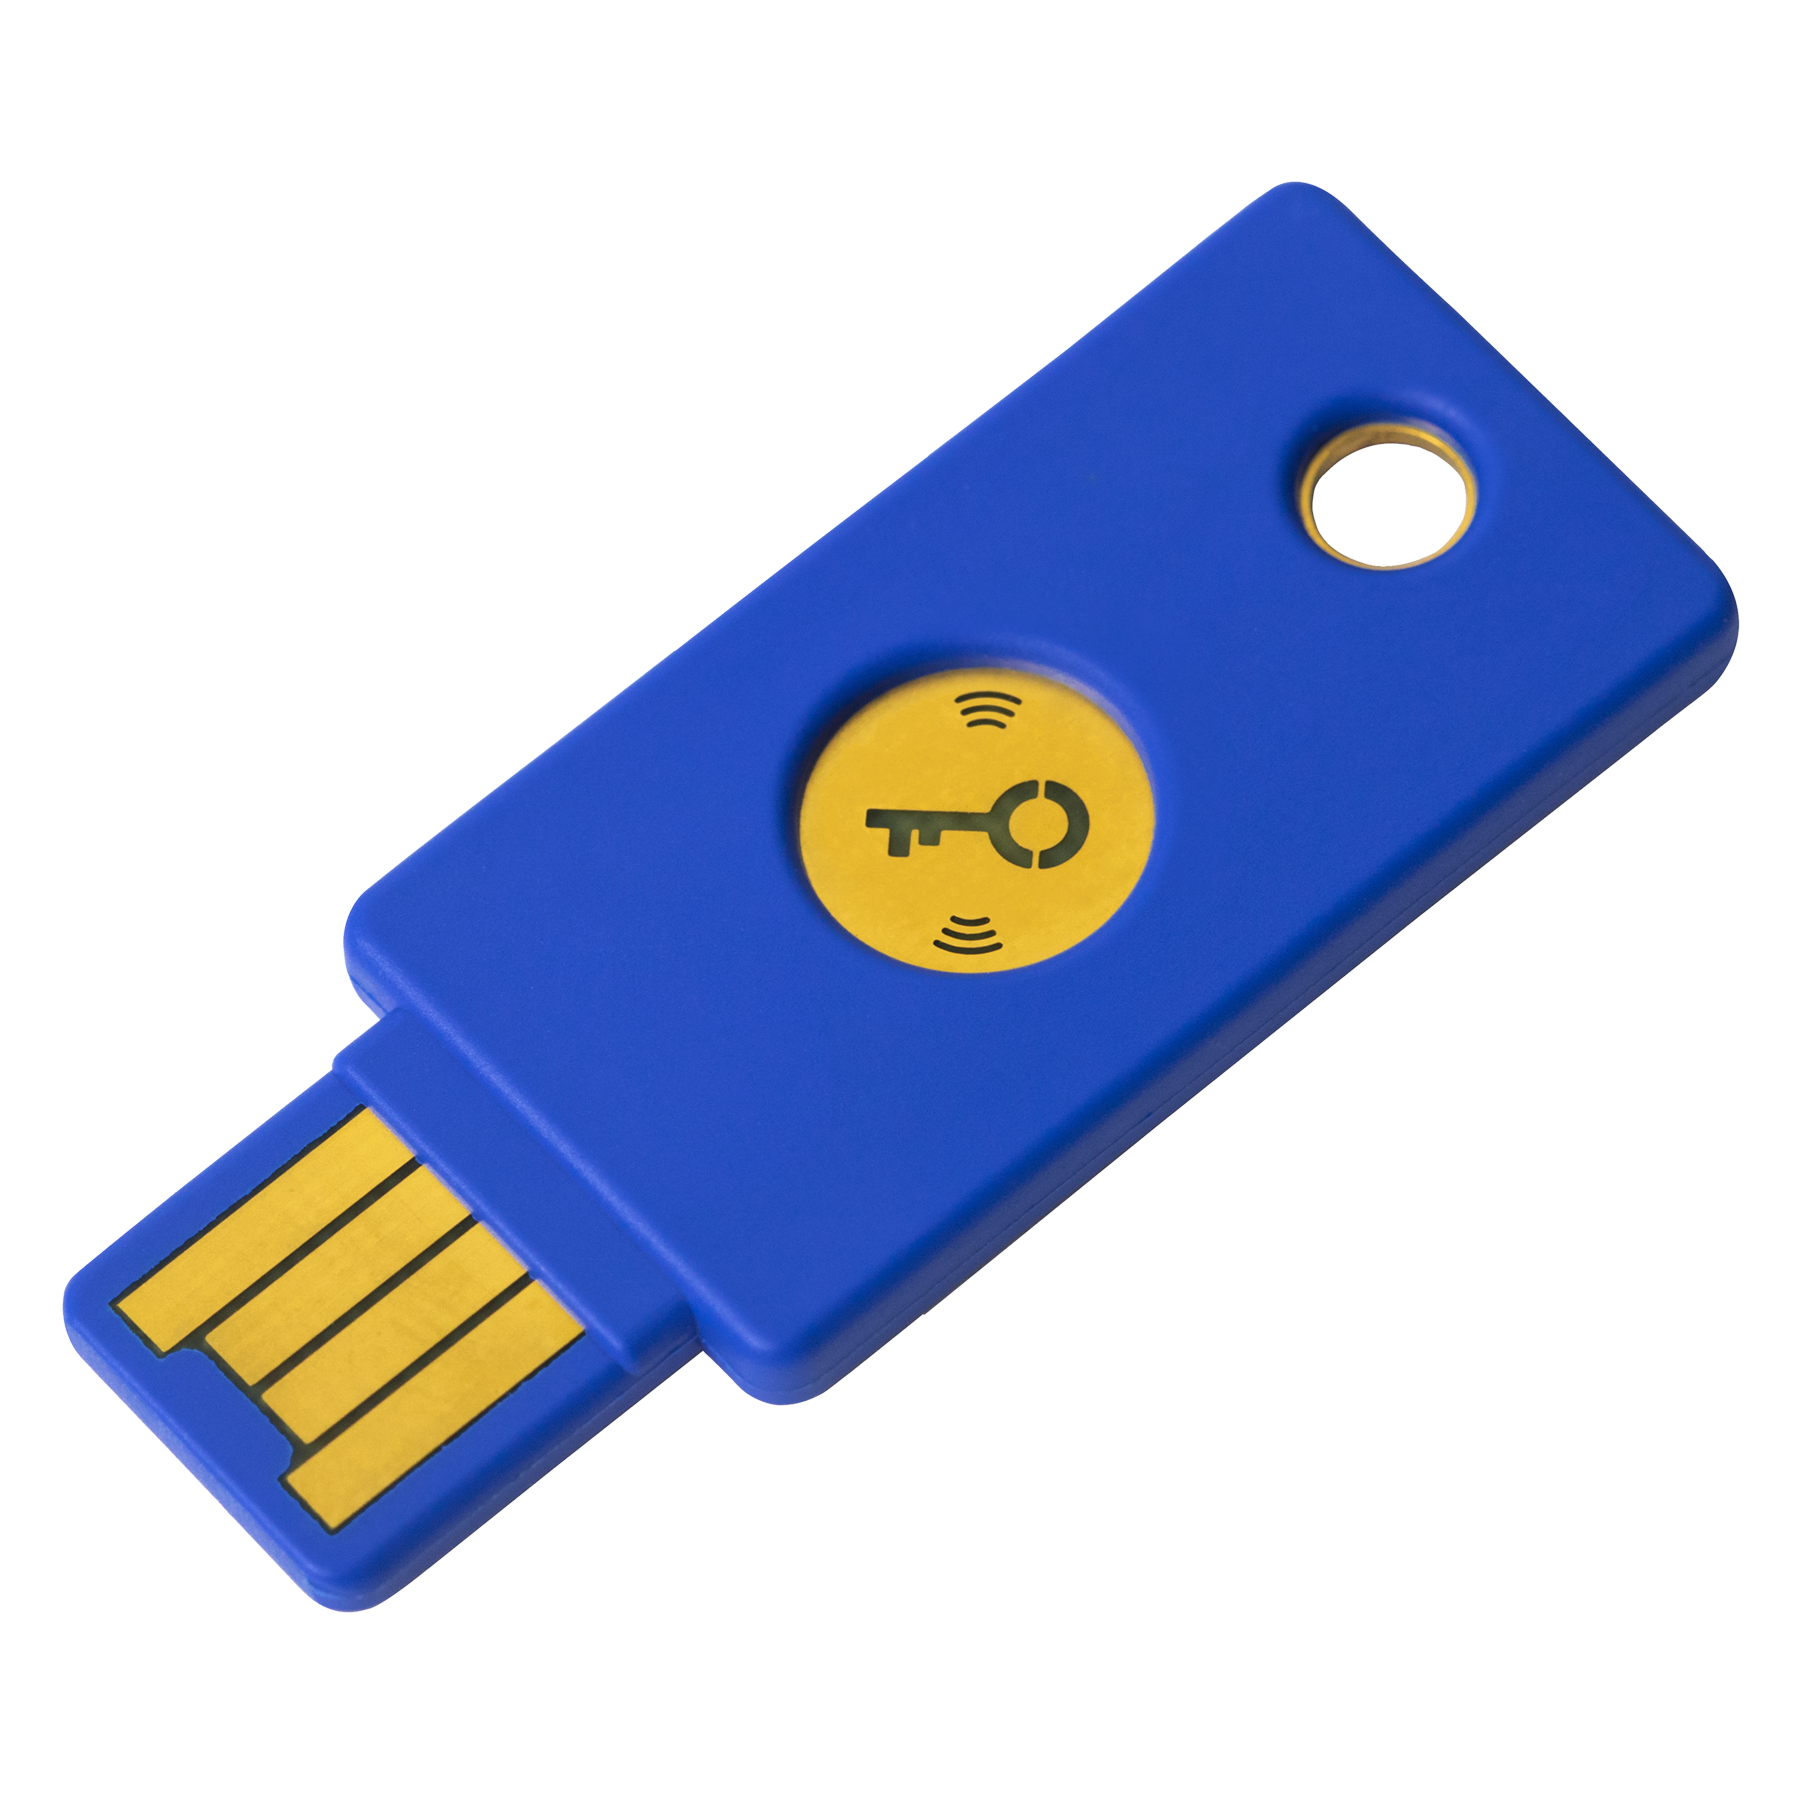 The Security Key NFC by Yubico